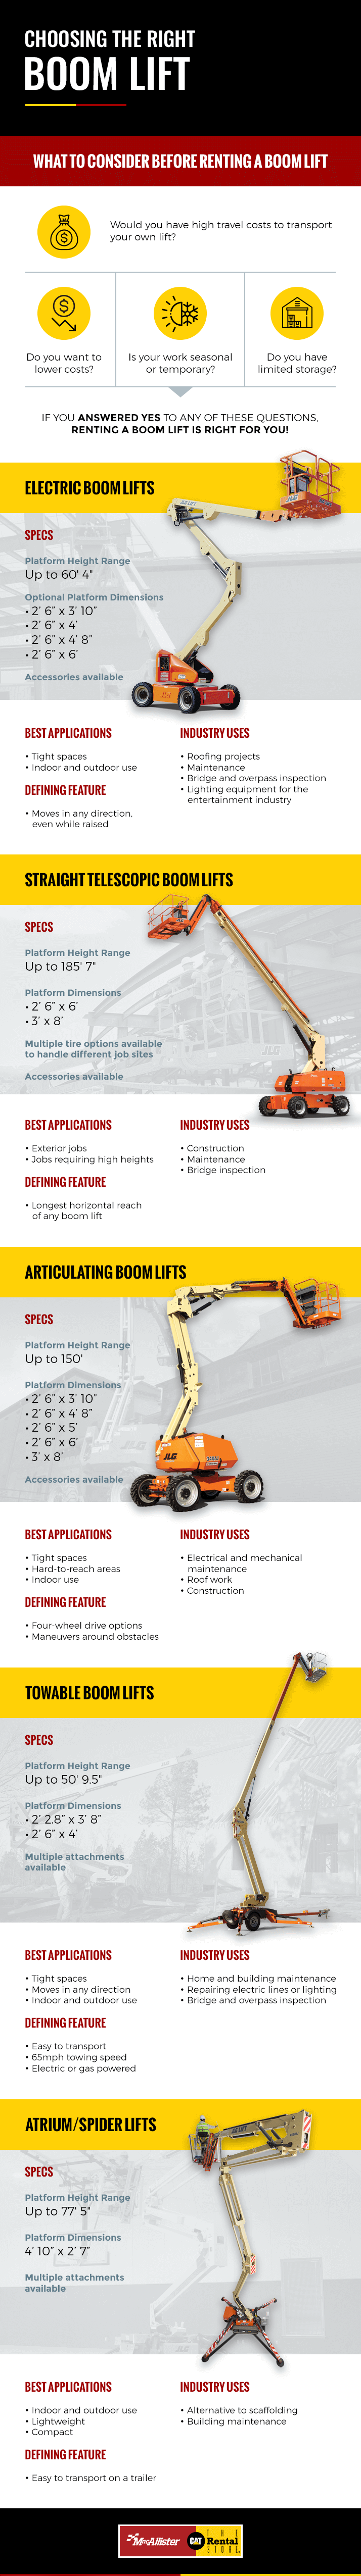 types of boom lifts